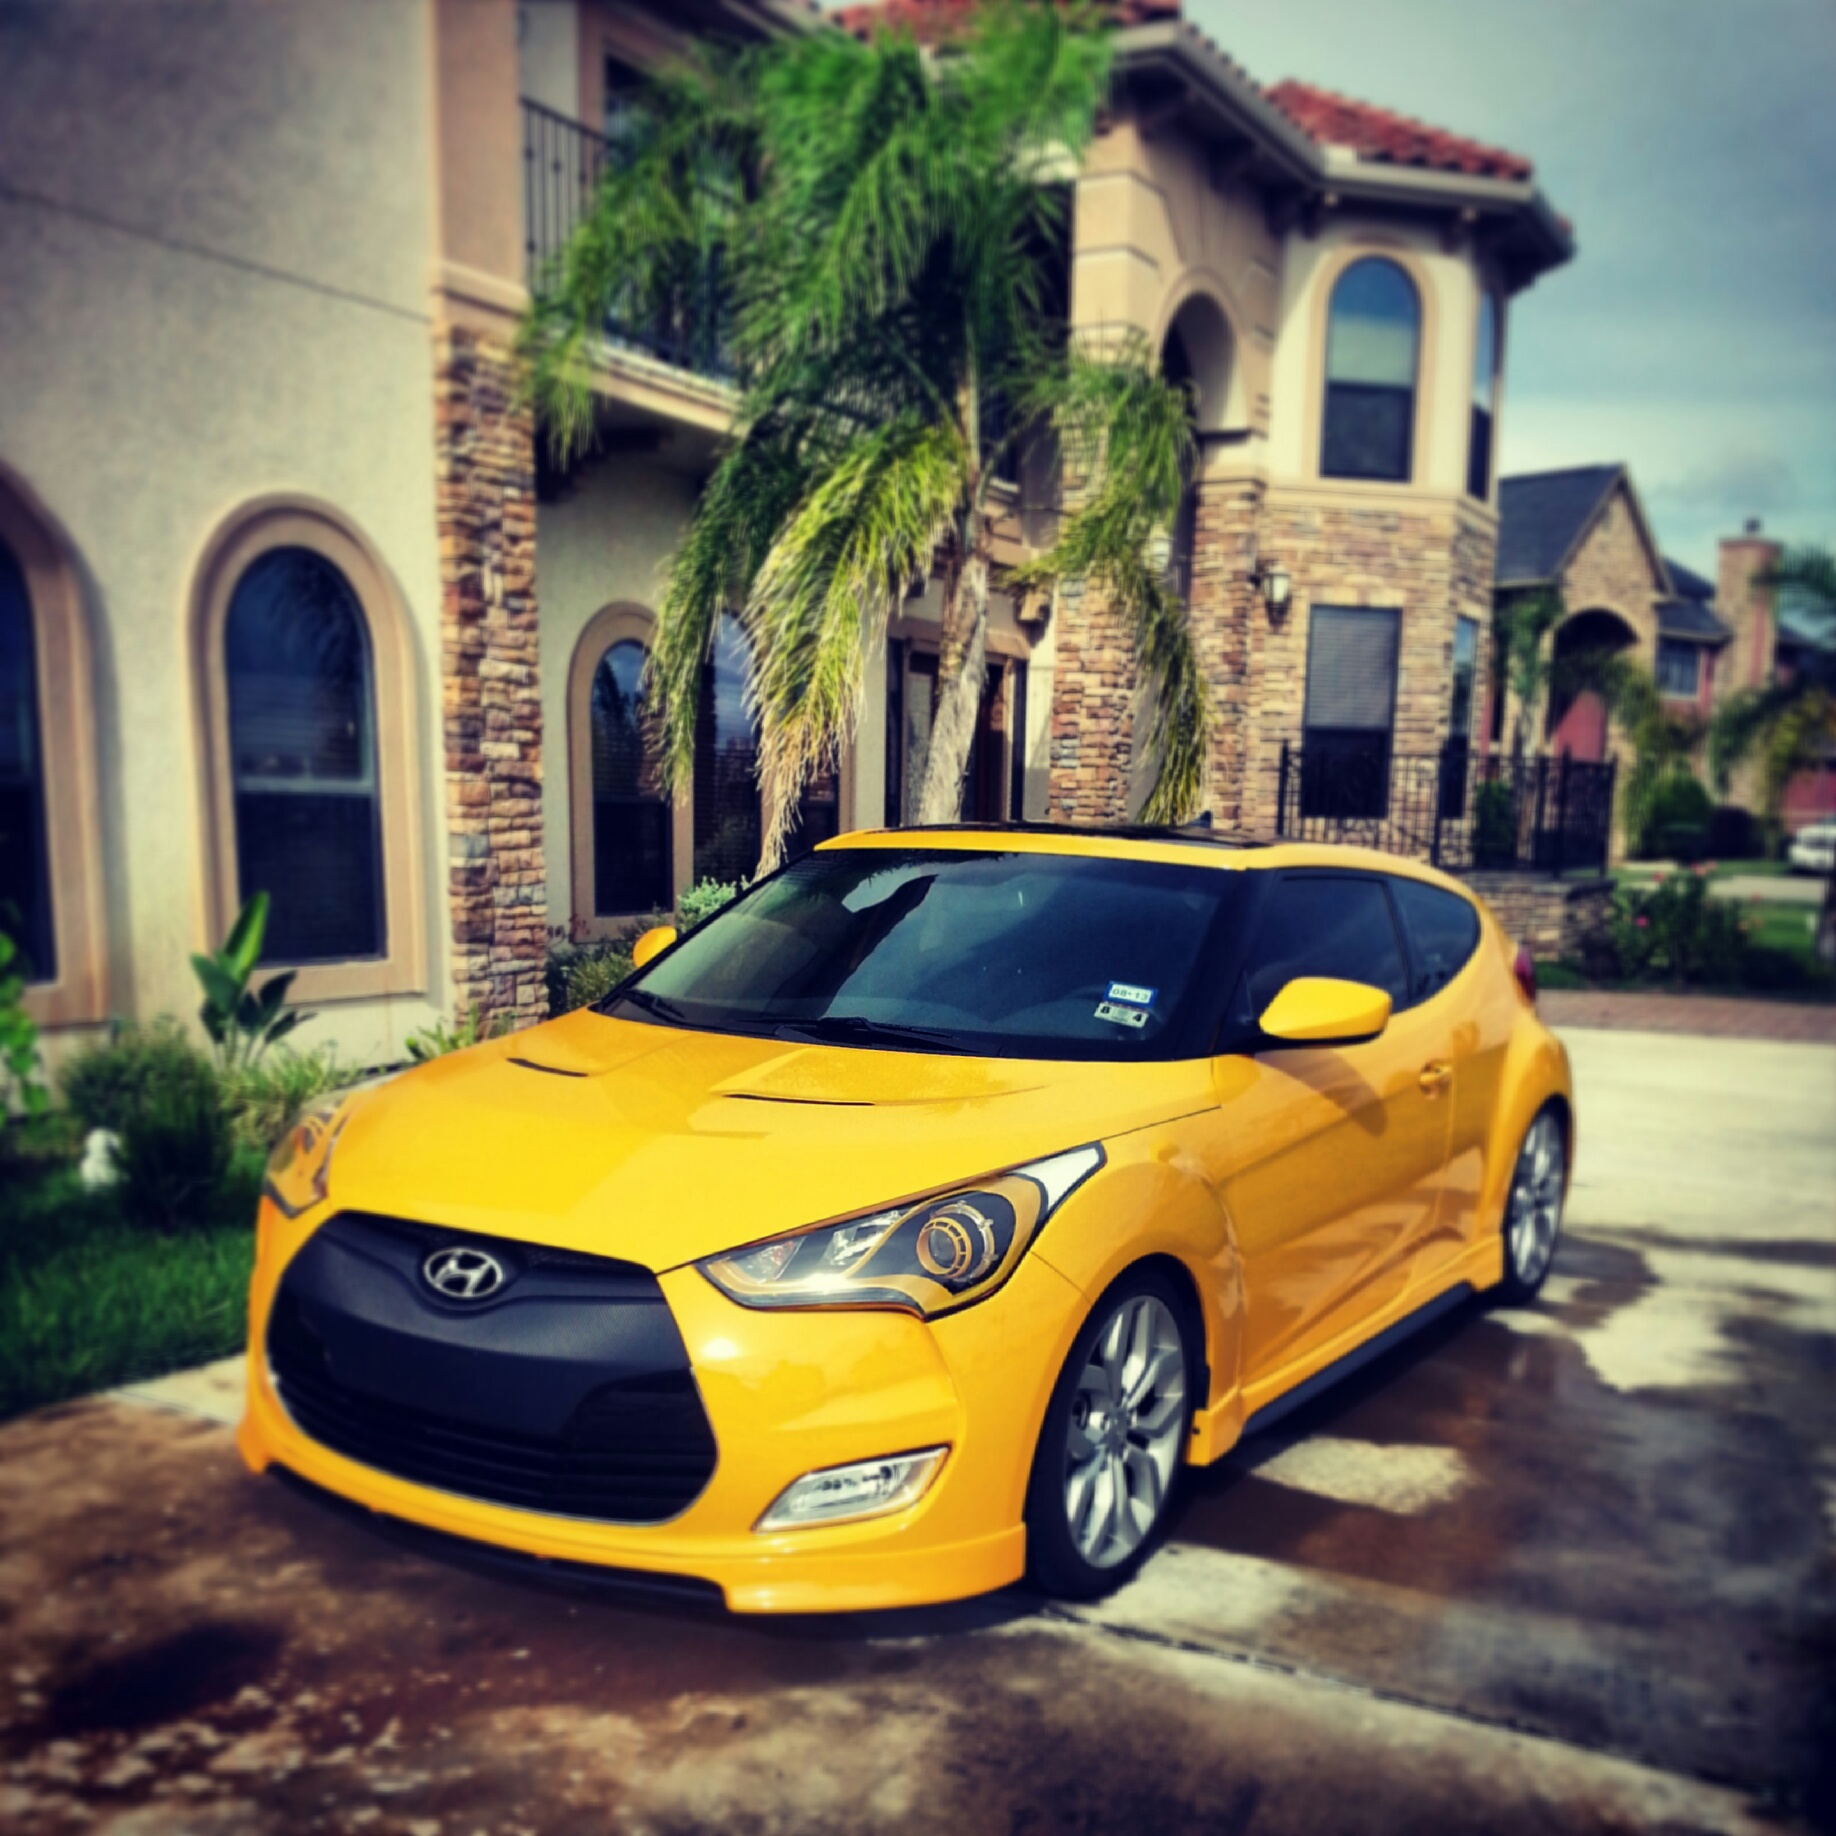 Pictures that don't deserve their own thread!!-veloster.jpg